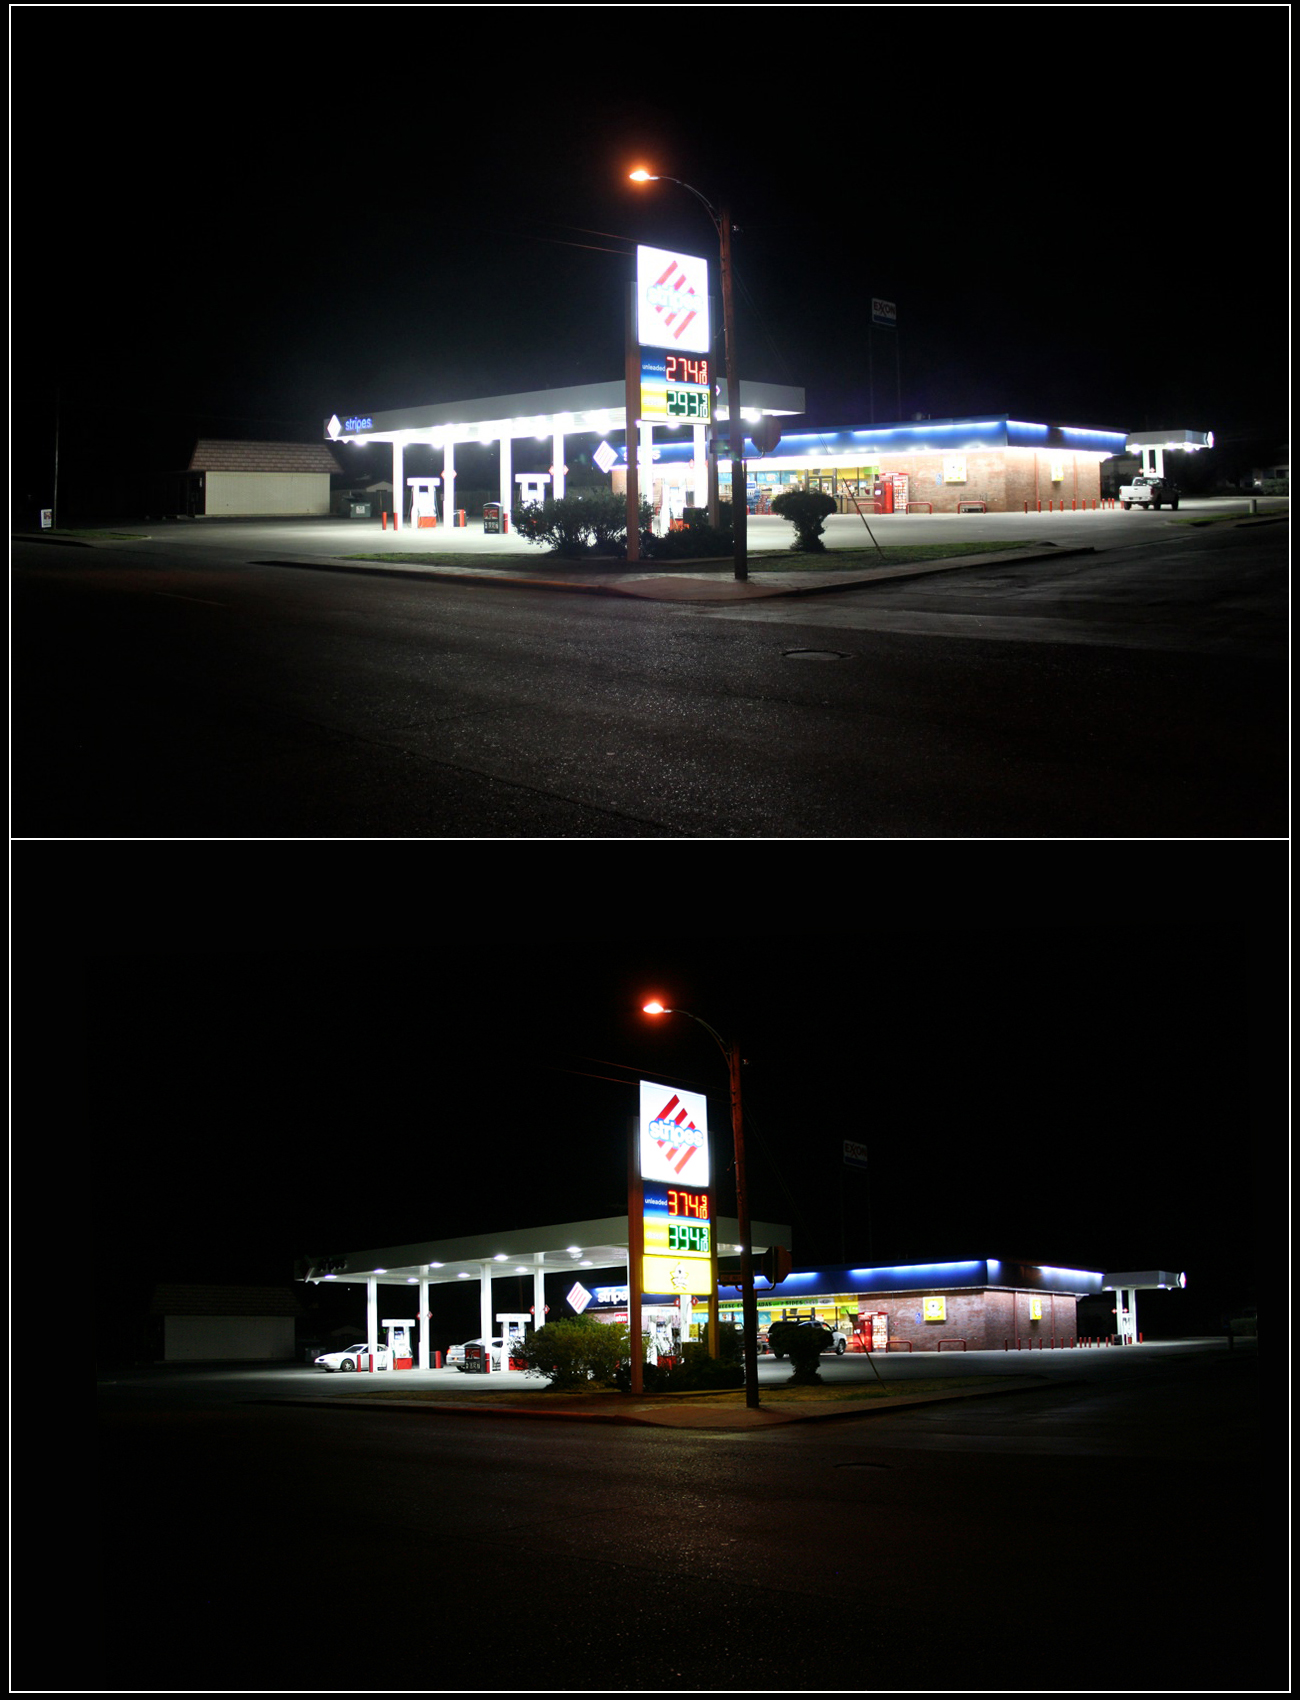 A Stripes gas station in Alpine, Texas that retrofitted its lights to comply with local ordinance. Photos courtesy of Bill Wren.